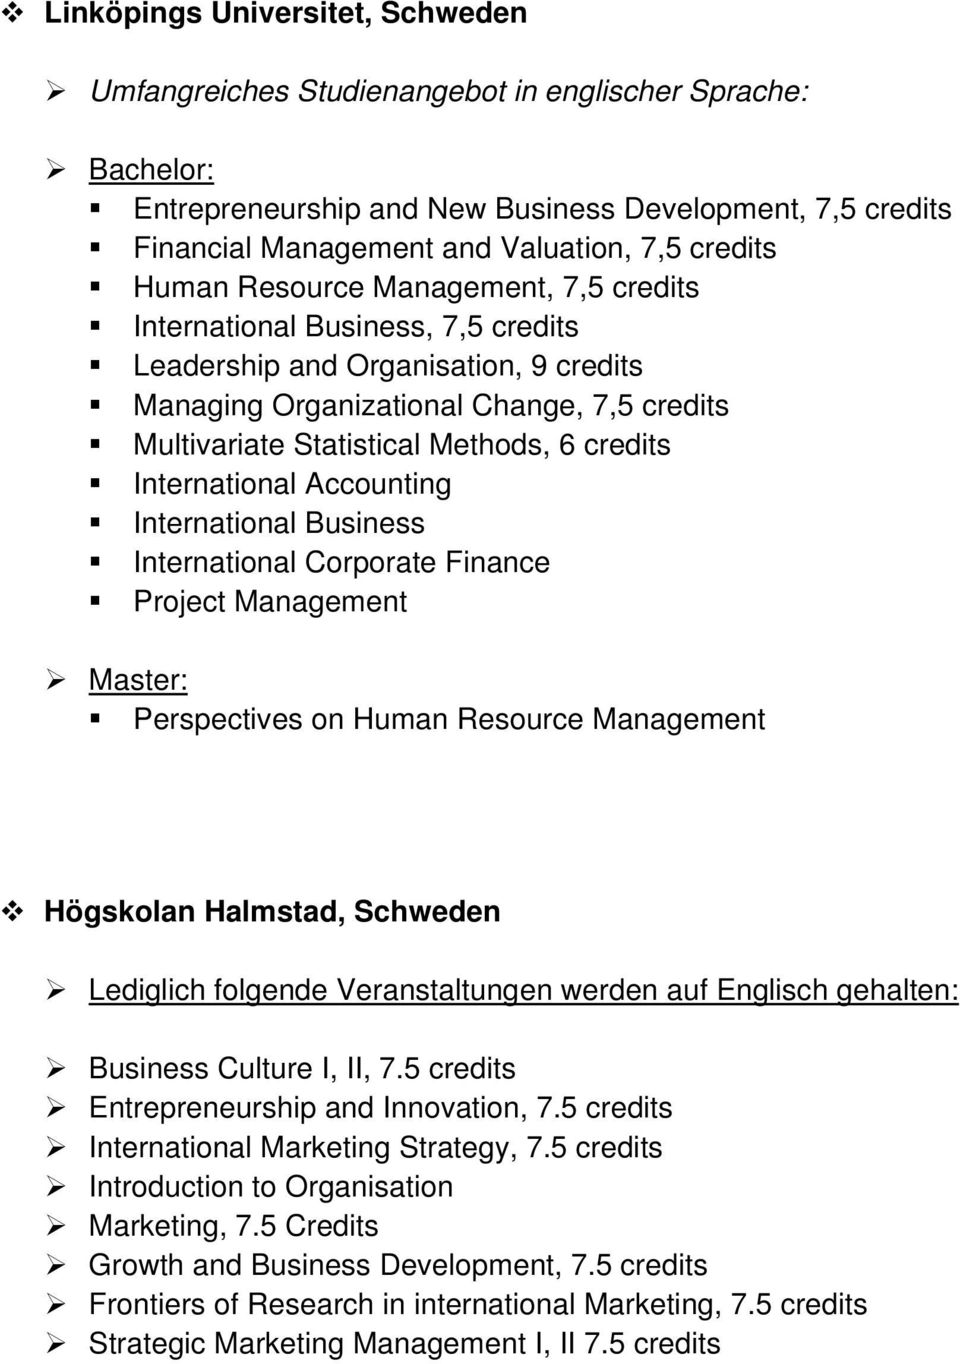 Management Perspectives on Human Resource Management Högskolan Halmstad, Schweden Business Culture I, II, 7.5 credits Entrepreneurship and Innovation, 7.5 credits International Marketing Strategy, 7.